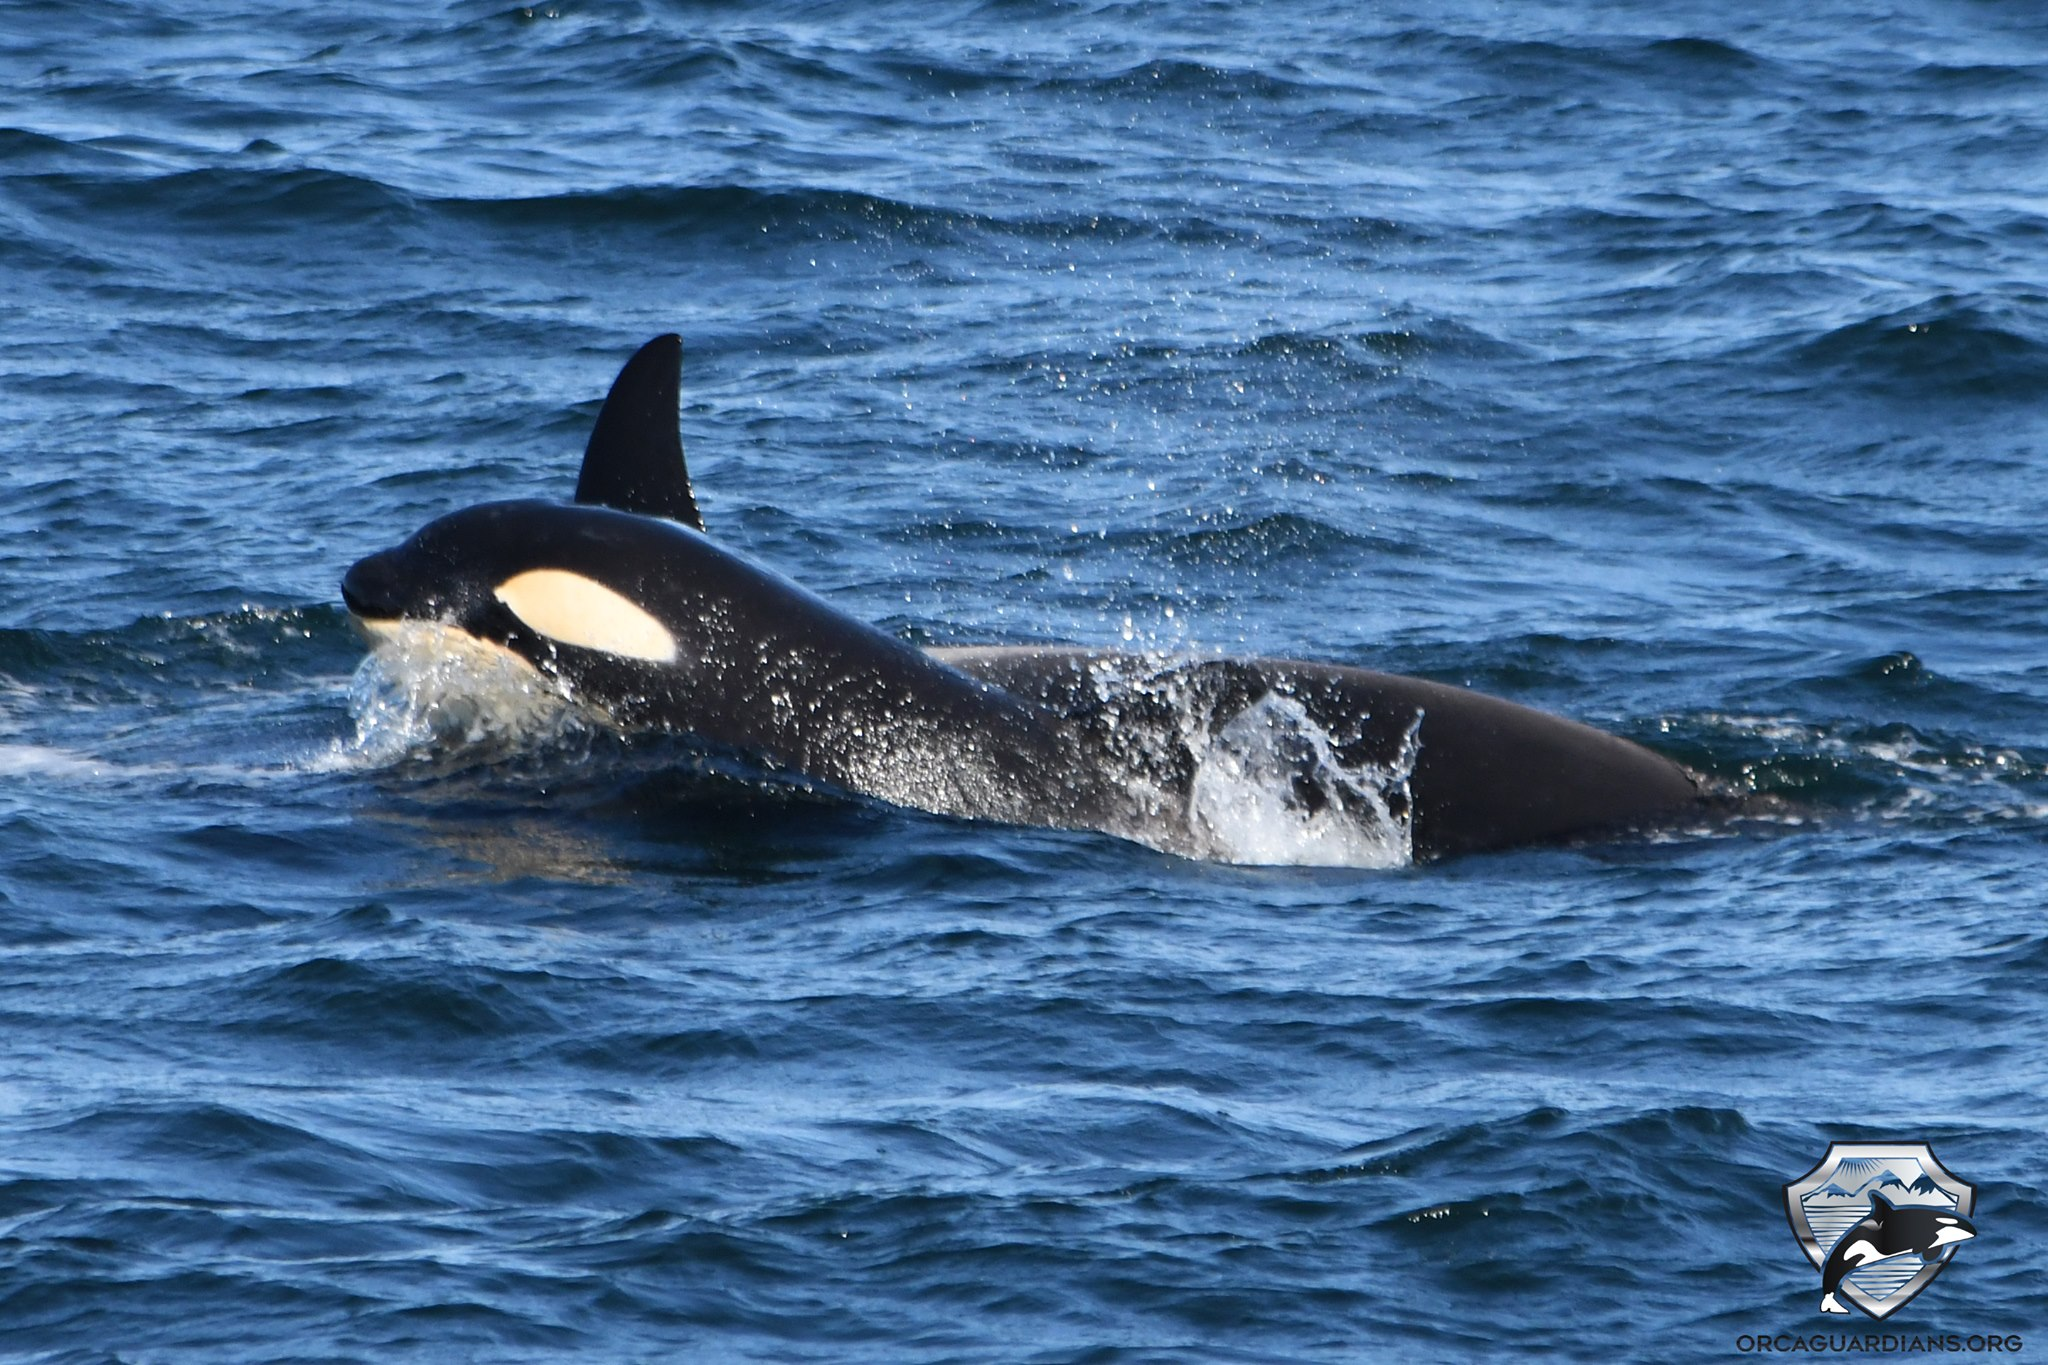 Iceland Whale Watching June – What to Expect on our Whale Tours in Snaefellsnes & the Westfjords in June